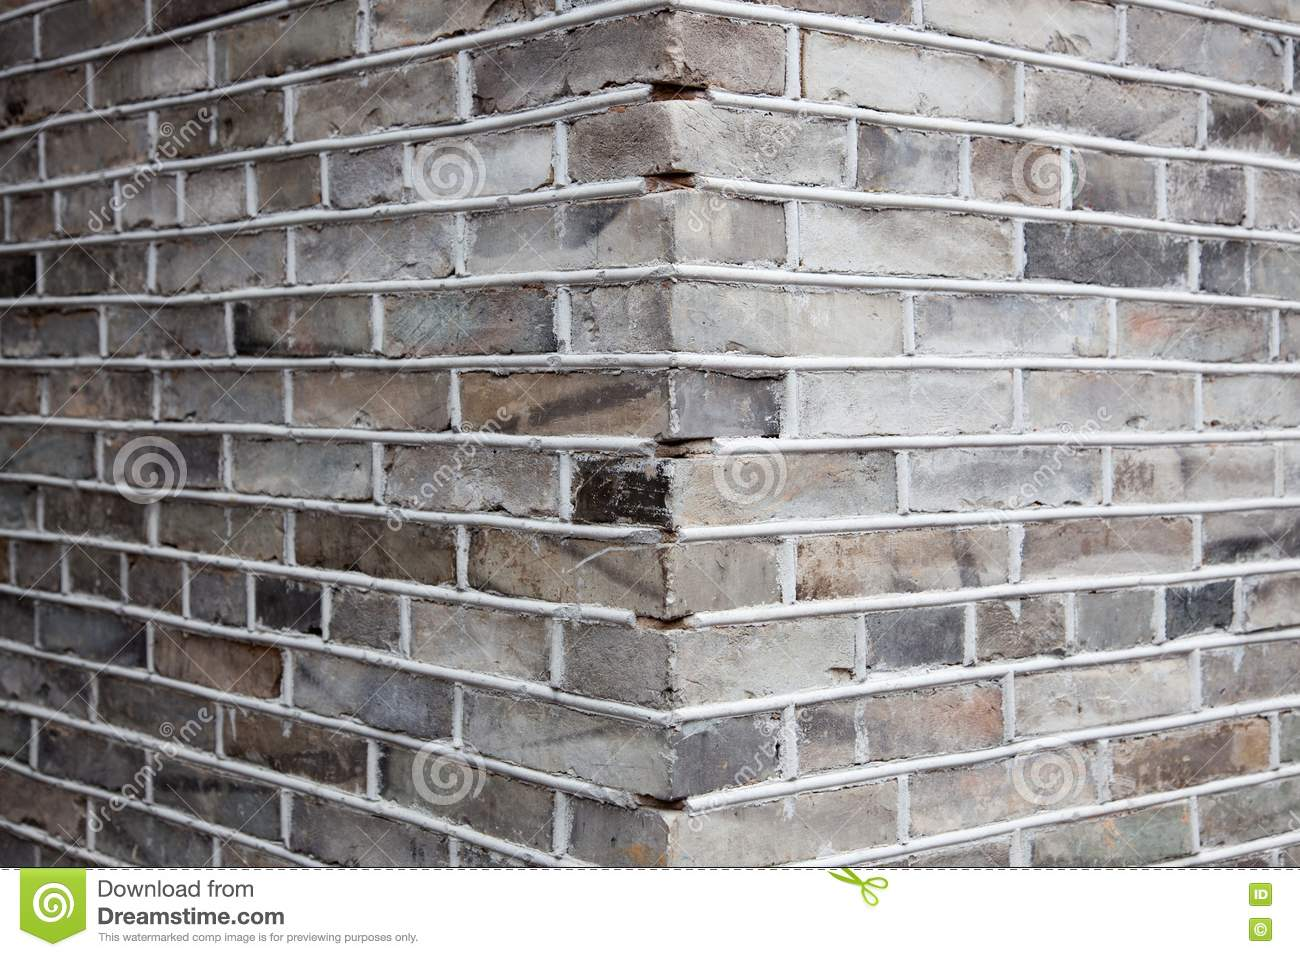 Coin De Mur De Briques Gris Photo Stock Image Du D Suet